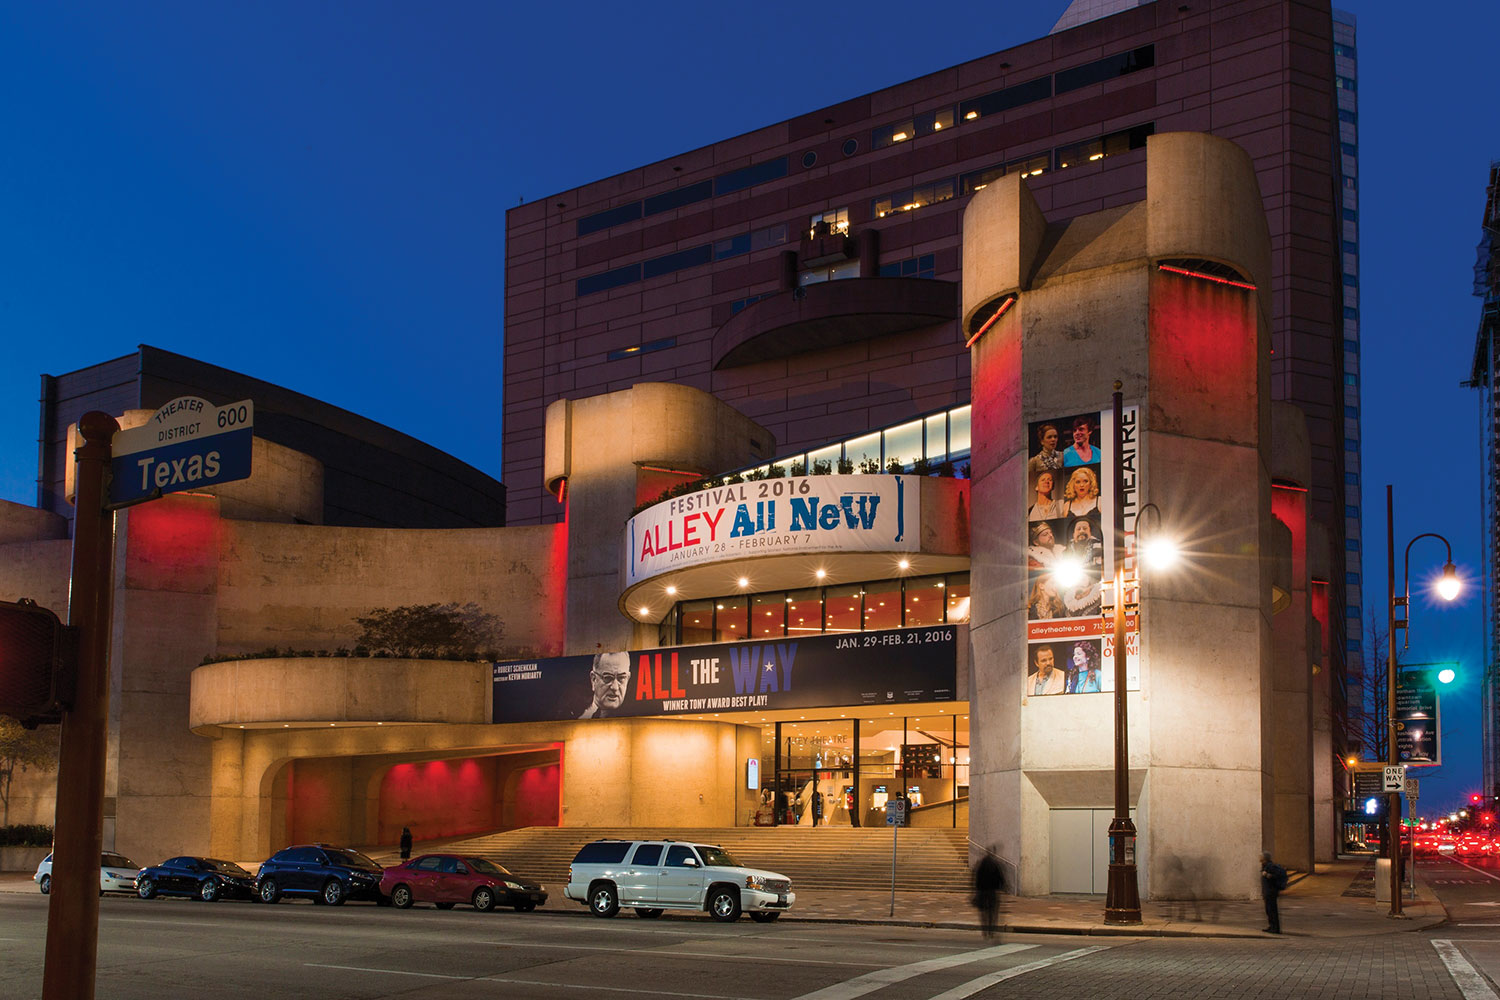 Houston's Alley Theatre has withstood the busts and booms of the city's petro economy. Founded in 1947, it has been at its current downtown location since 1968. (Photo: Julie Soefer)